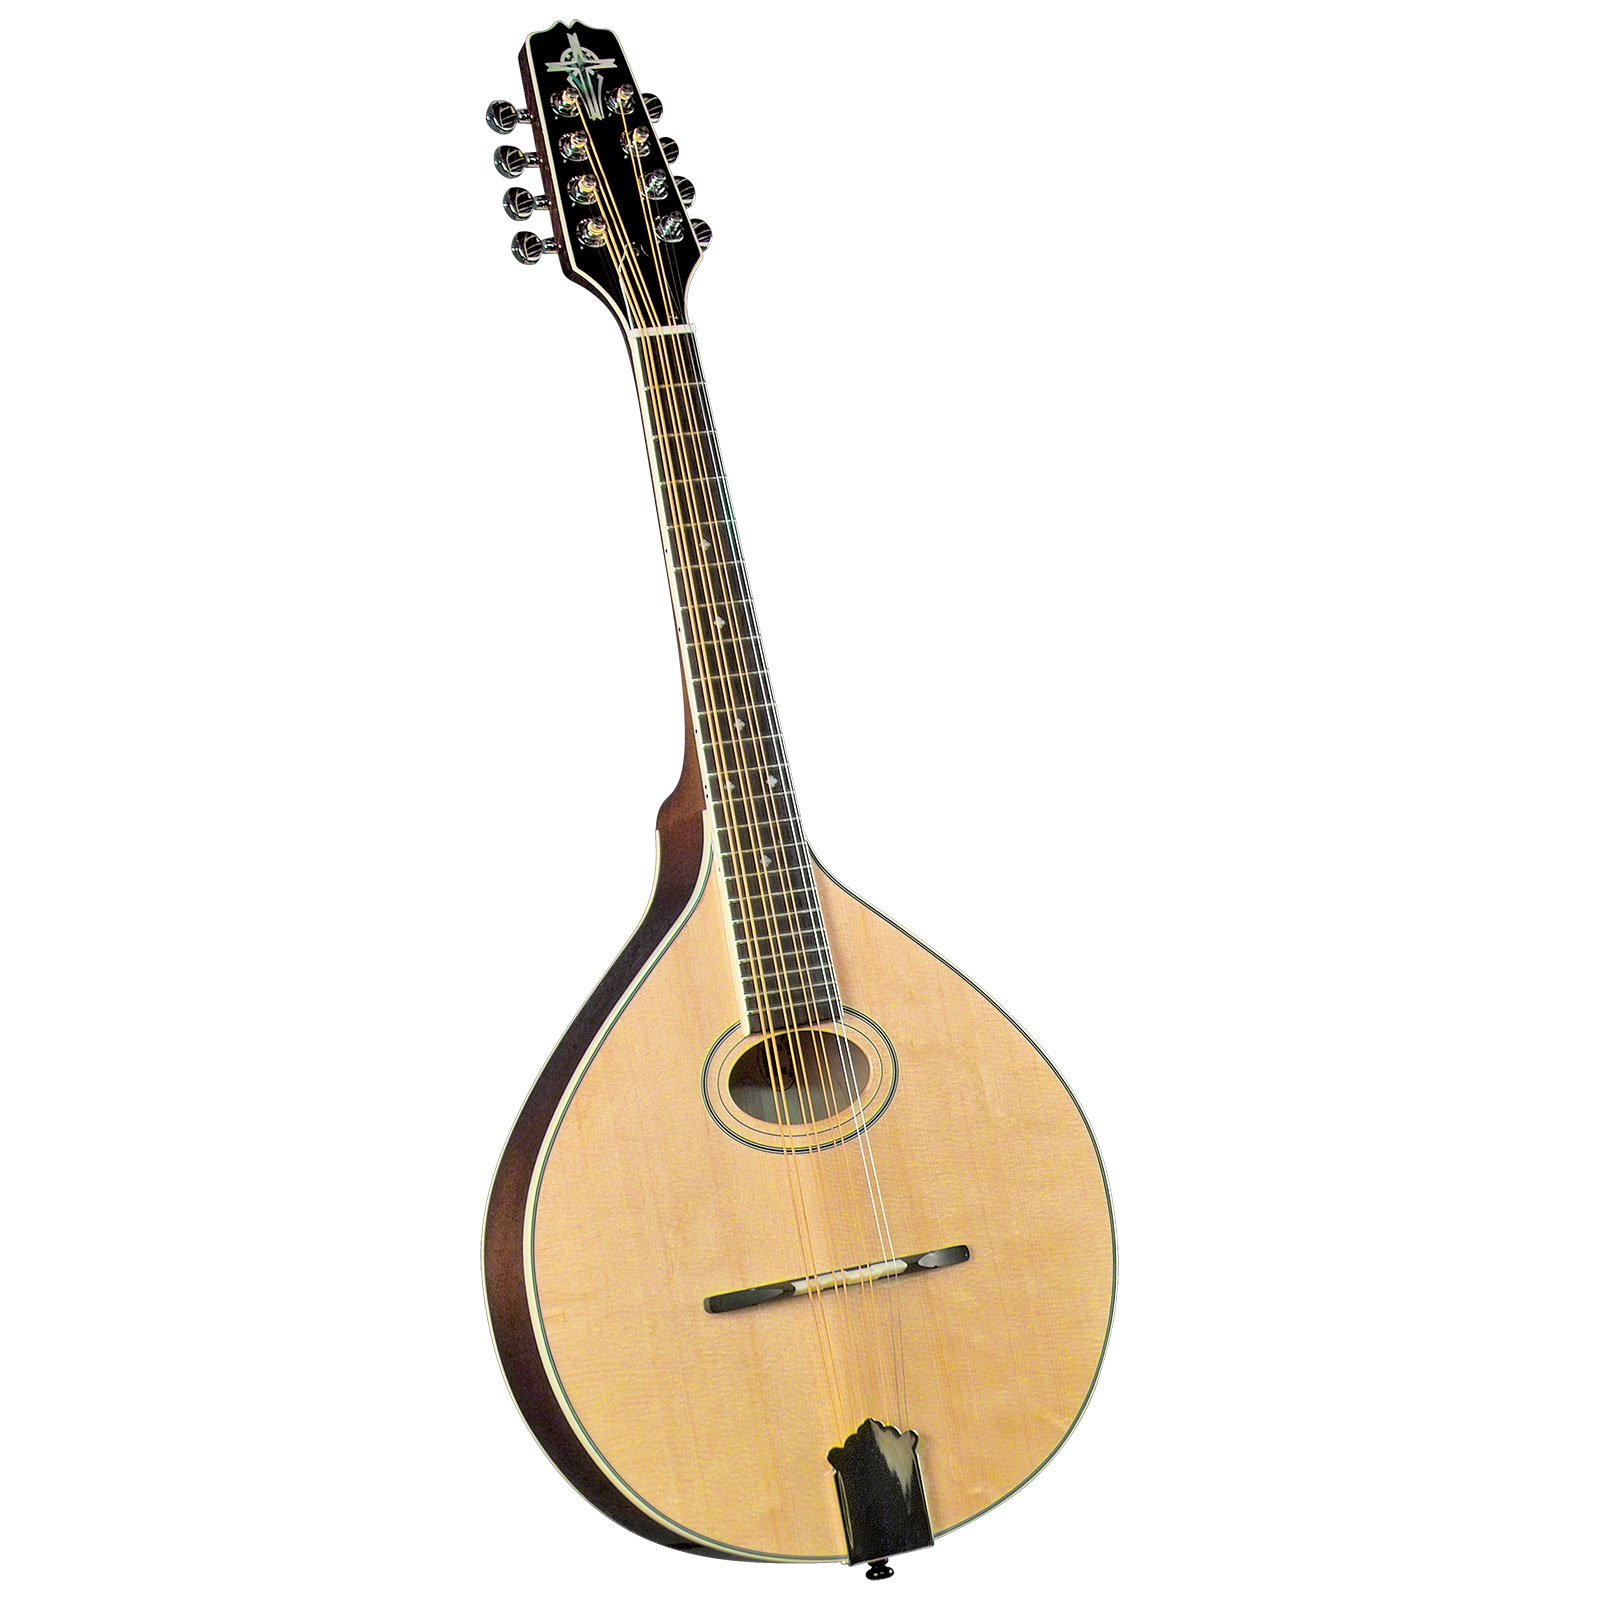 Trinity College TM-275 Standard Celtic Mandola with Hardshell Case - Natural Top